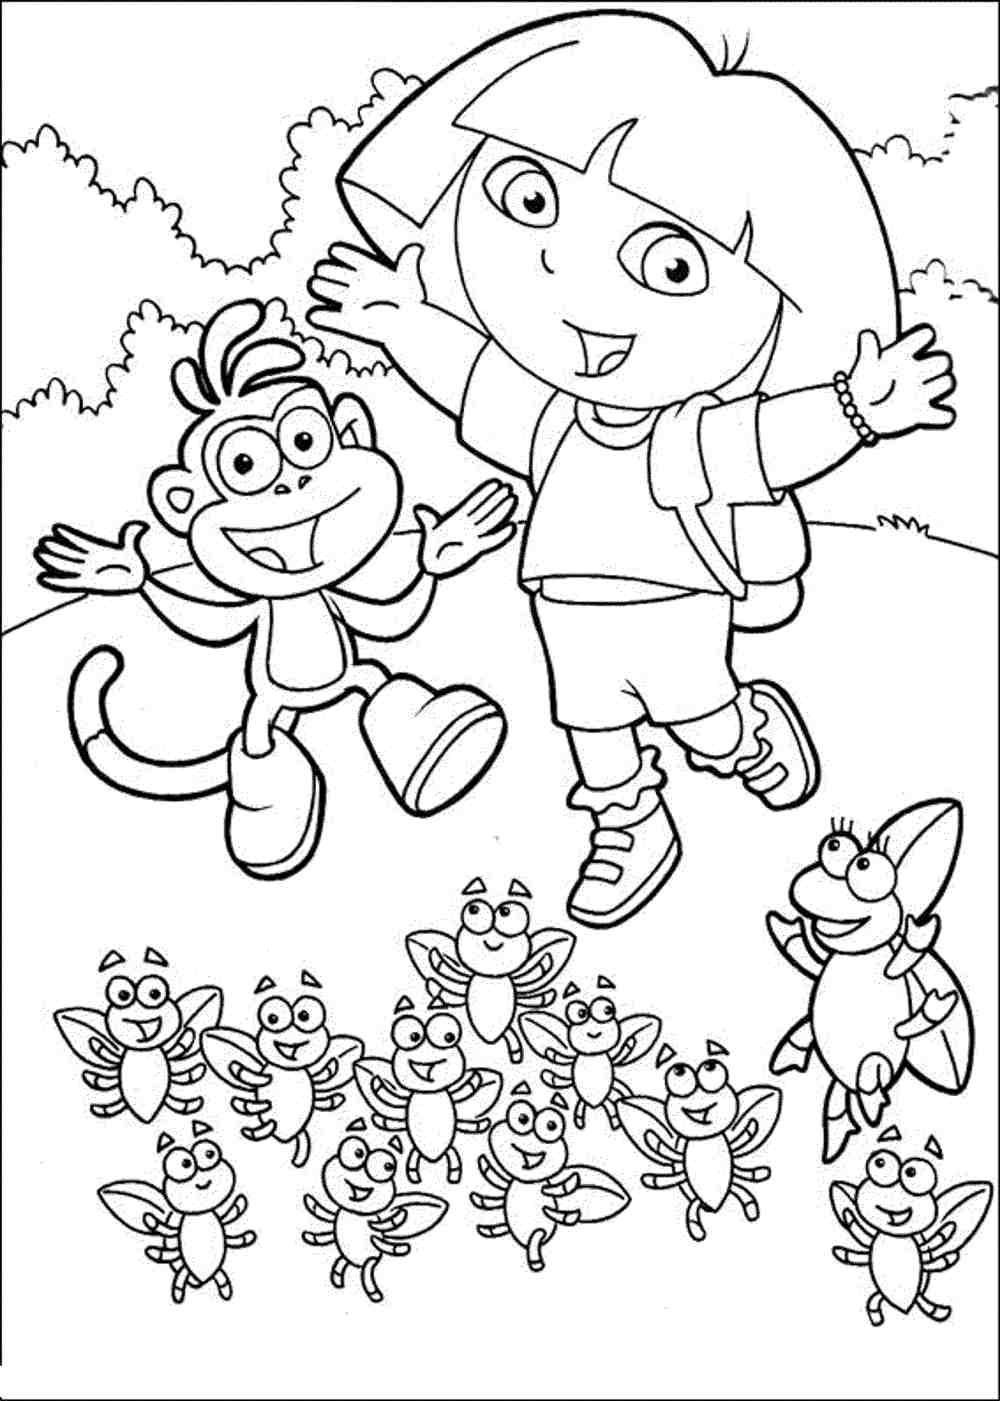 dora colouring pages dora coloring pages backpack diego boots swiper print dora colouring pages